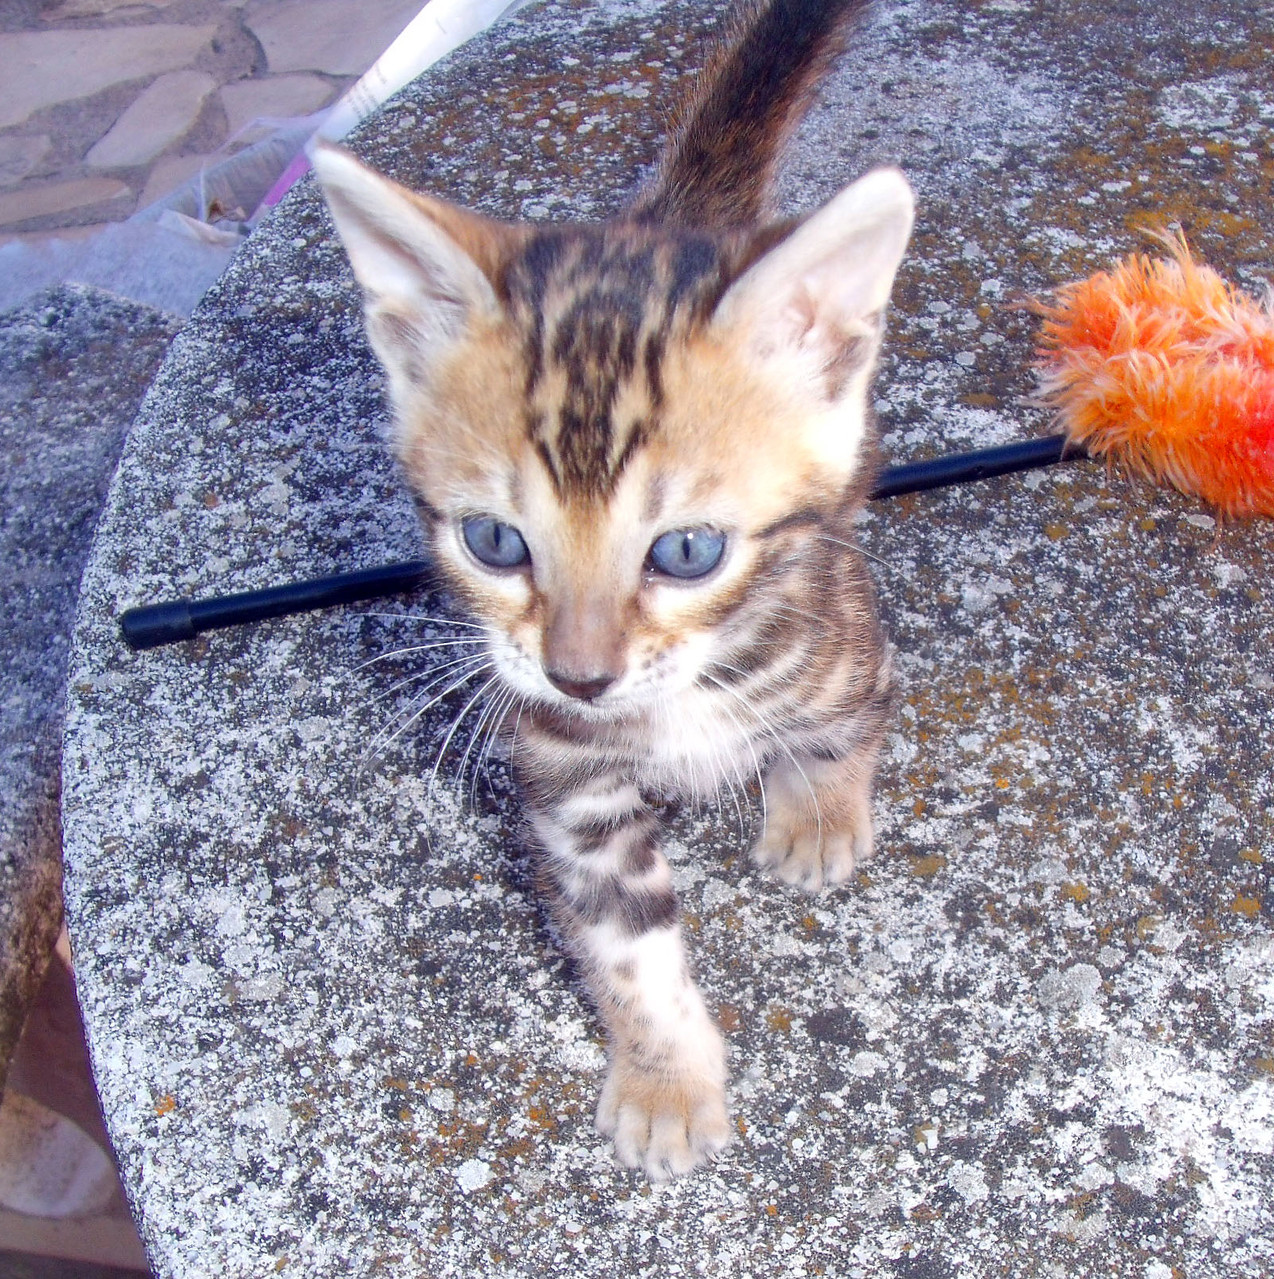 Manekineko juliette has a gun bengal female 3 months